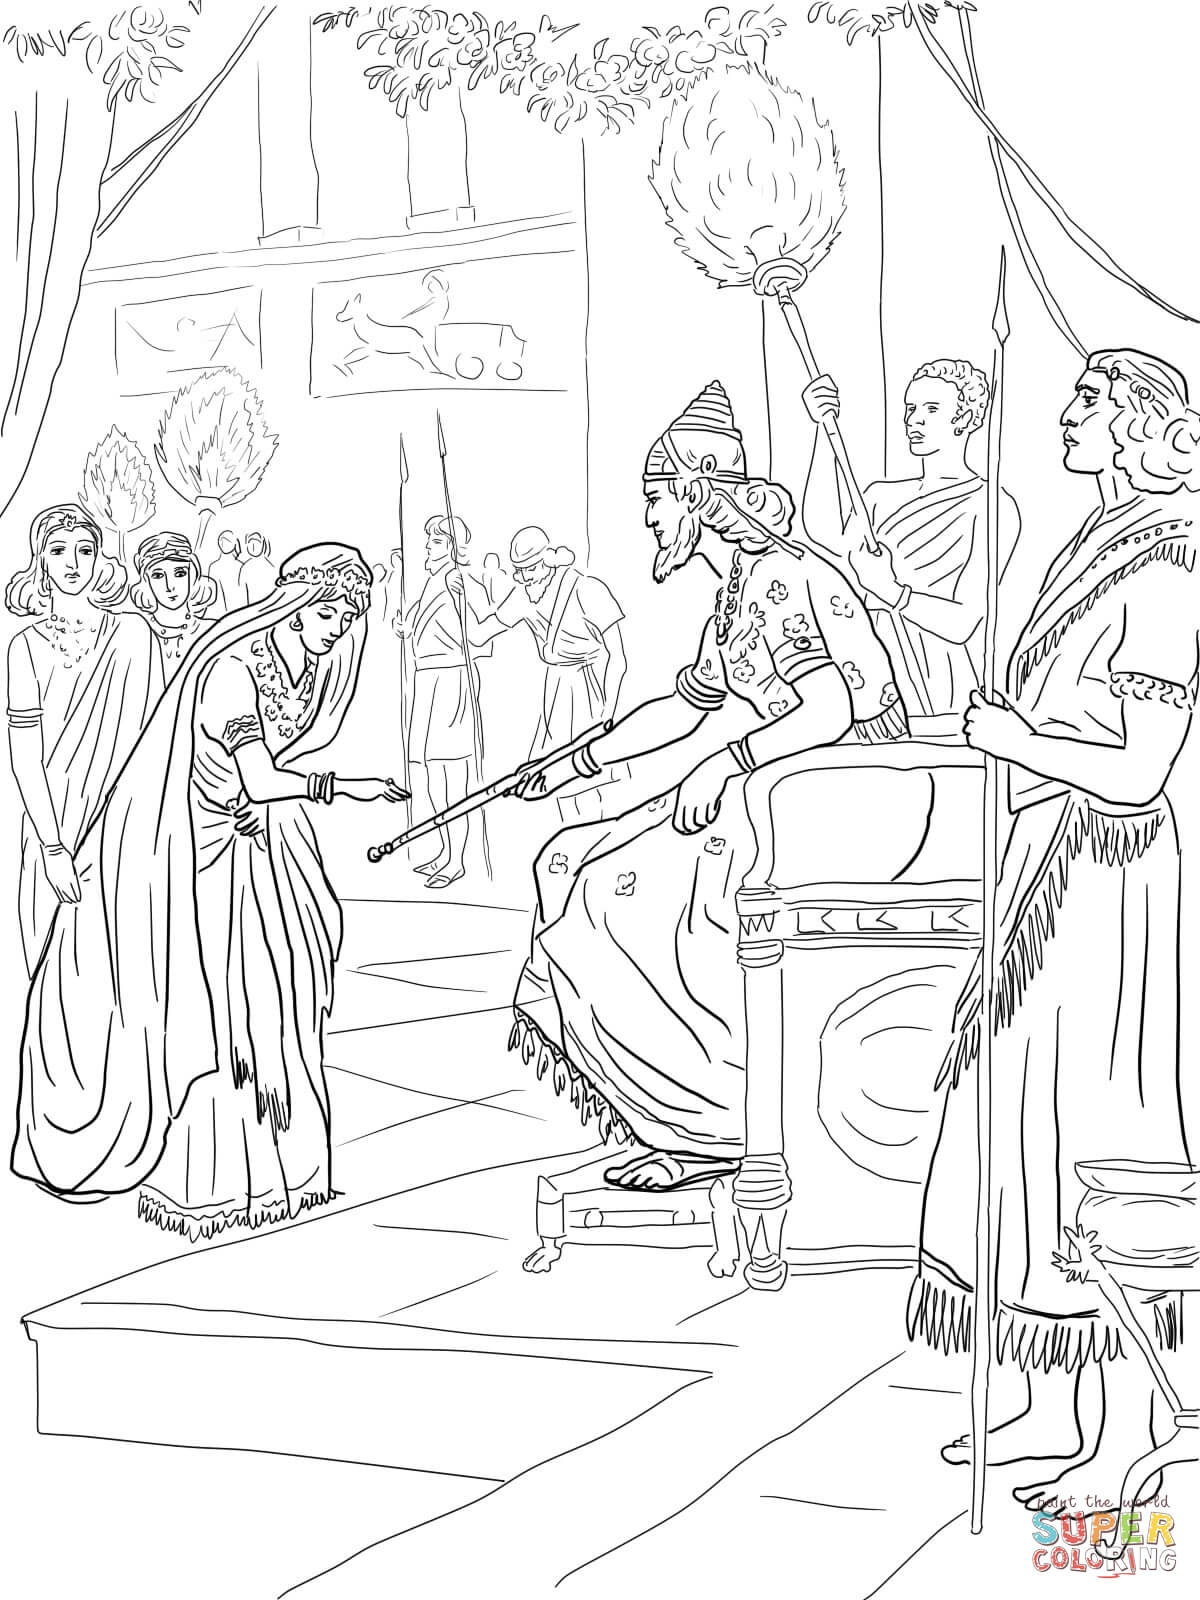 shadrach meshach and abednego coloring page - esther und koenig xerxes